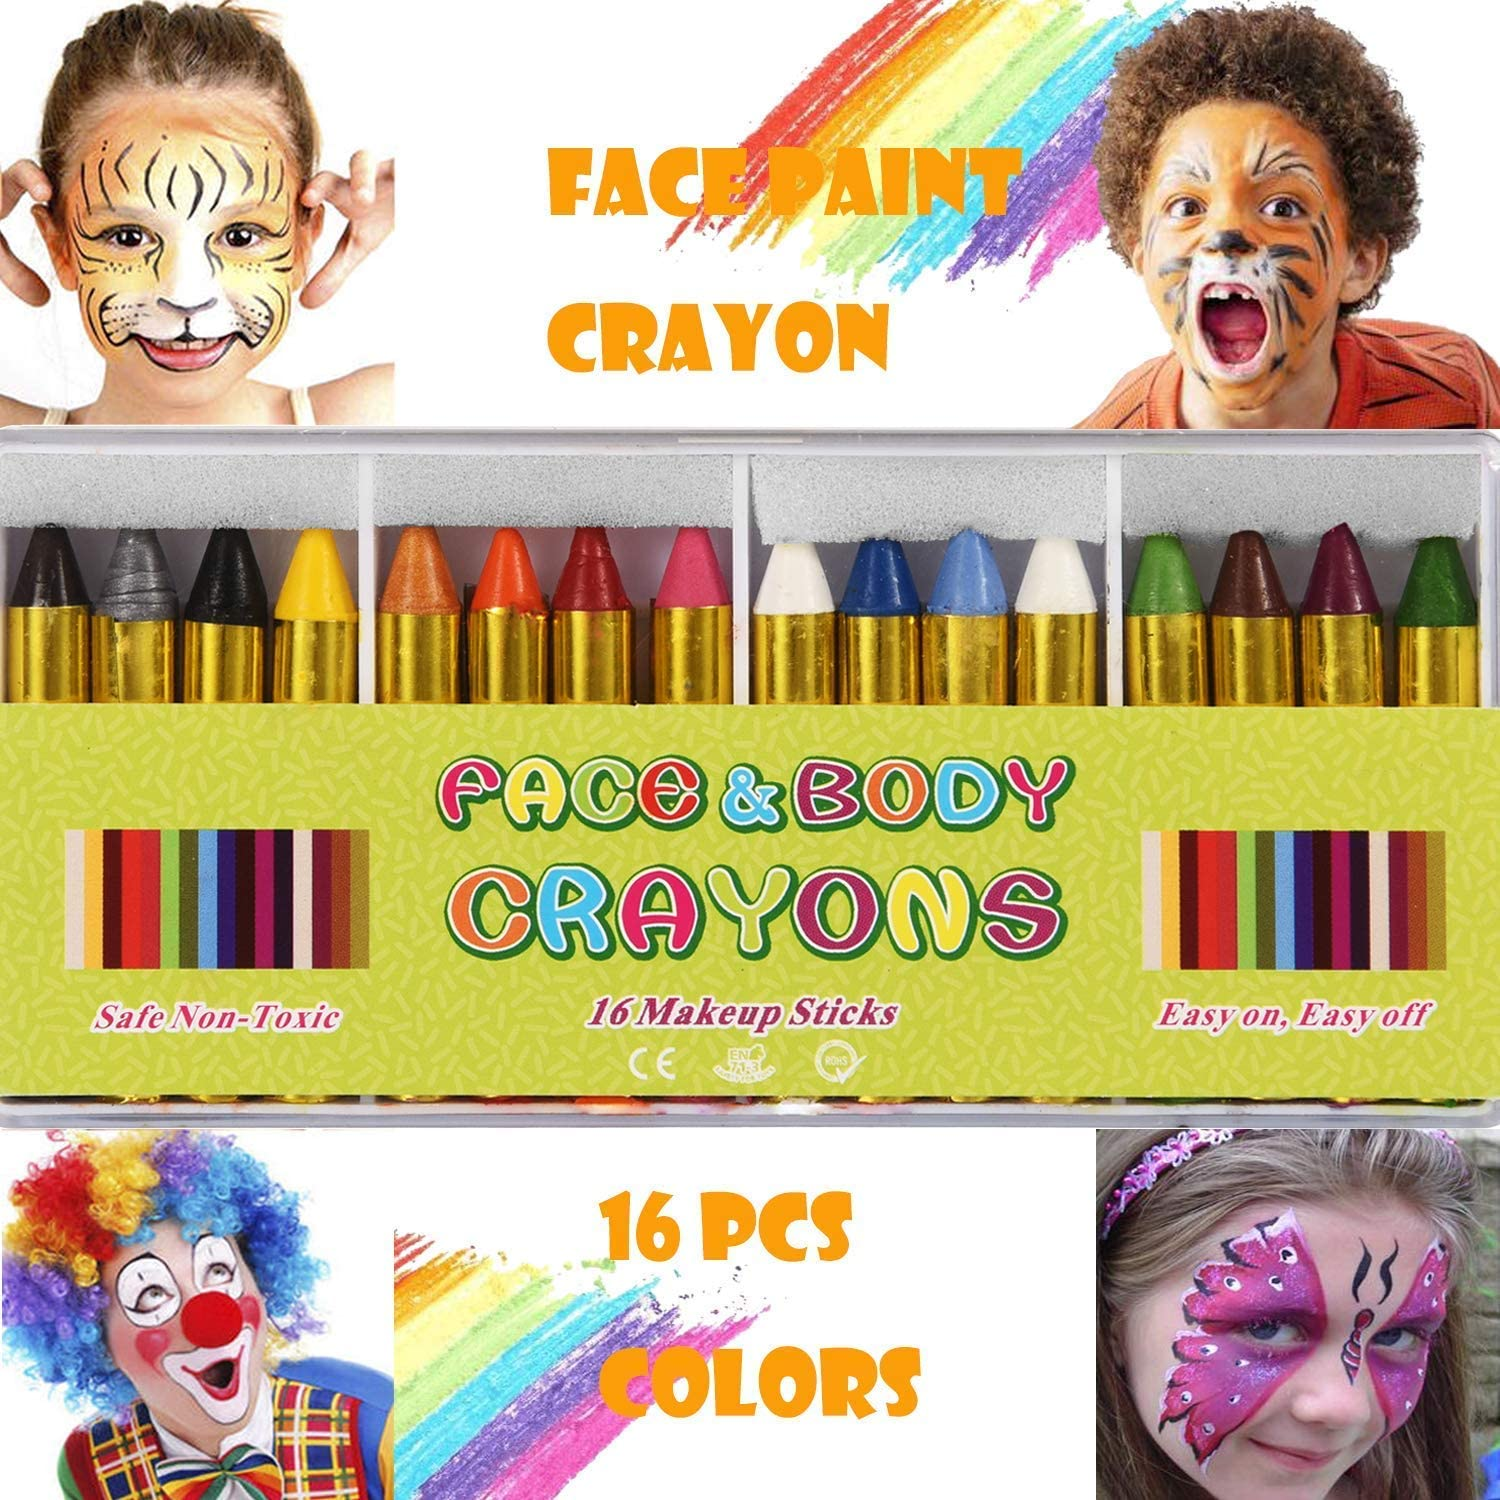 Professional Washable Safe /& Non-Toxic Face and Body Paint Crayons XLKJ Face Painting Kits for Kids